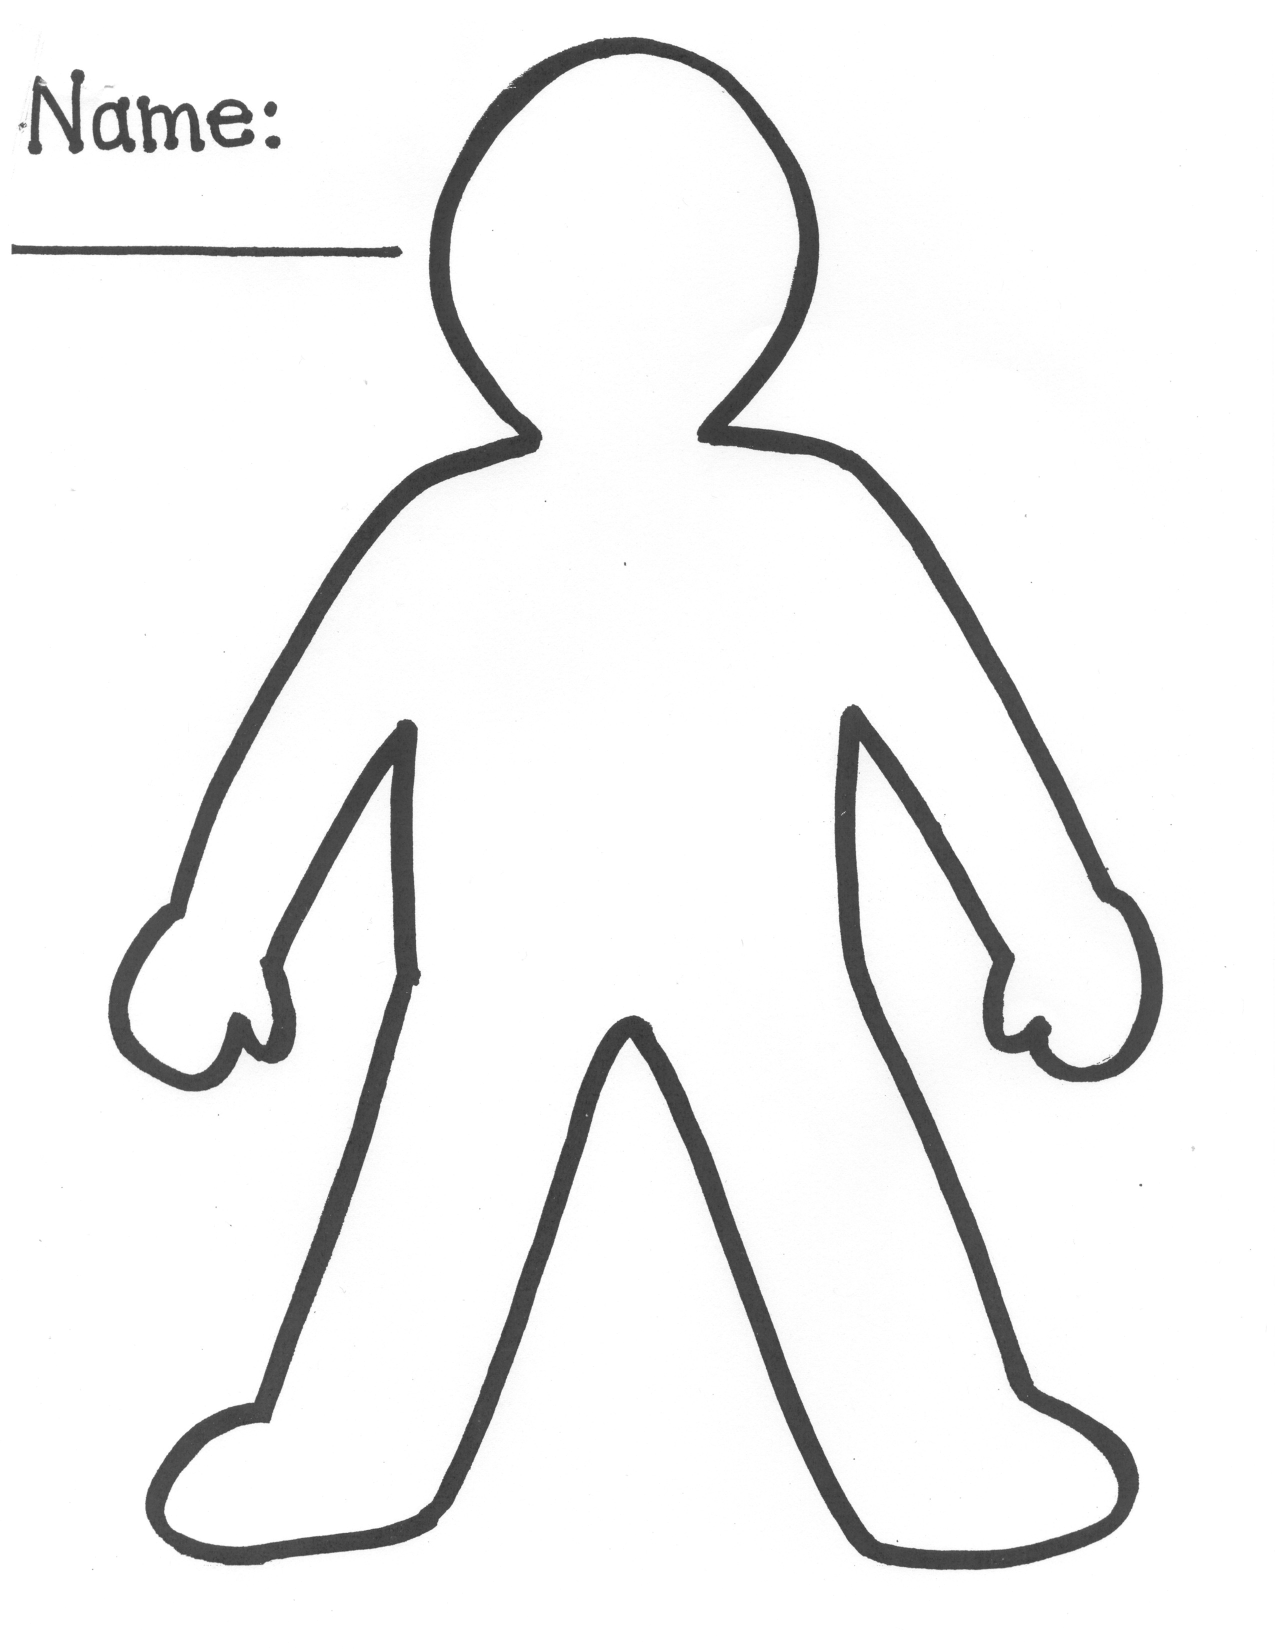 kid body outline coloring page person outline coloring page coloring home body page kid outline coloring